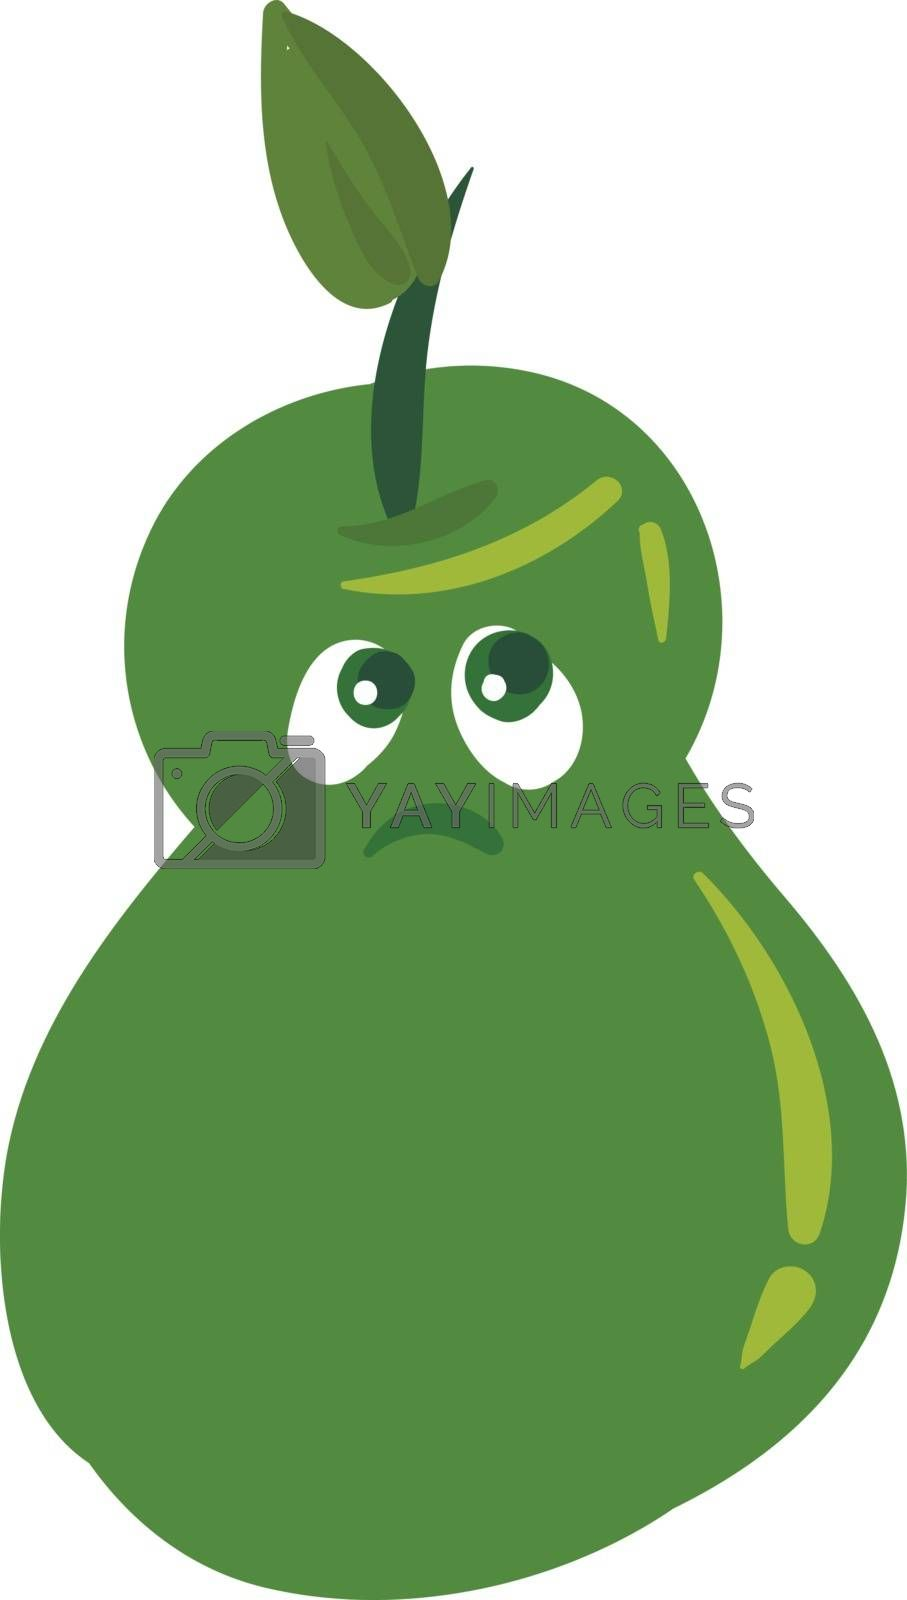 Royalty free image of Emoji of a sad green-colored pear set on isolated white backgrou by Morphart